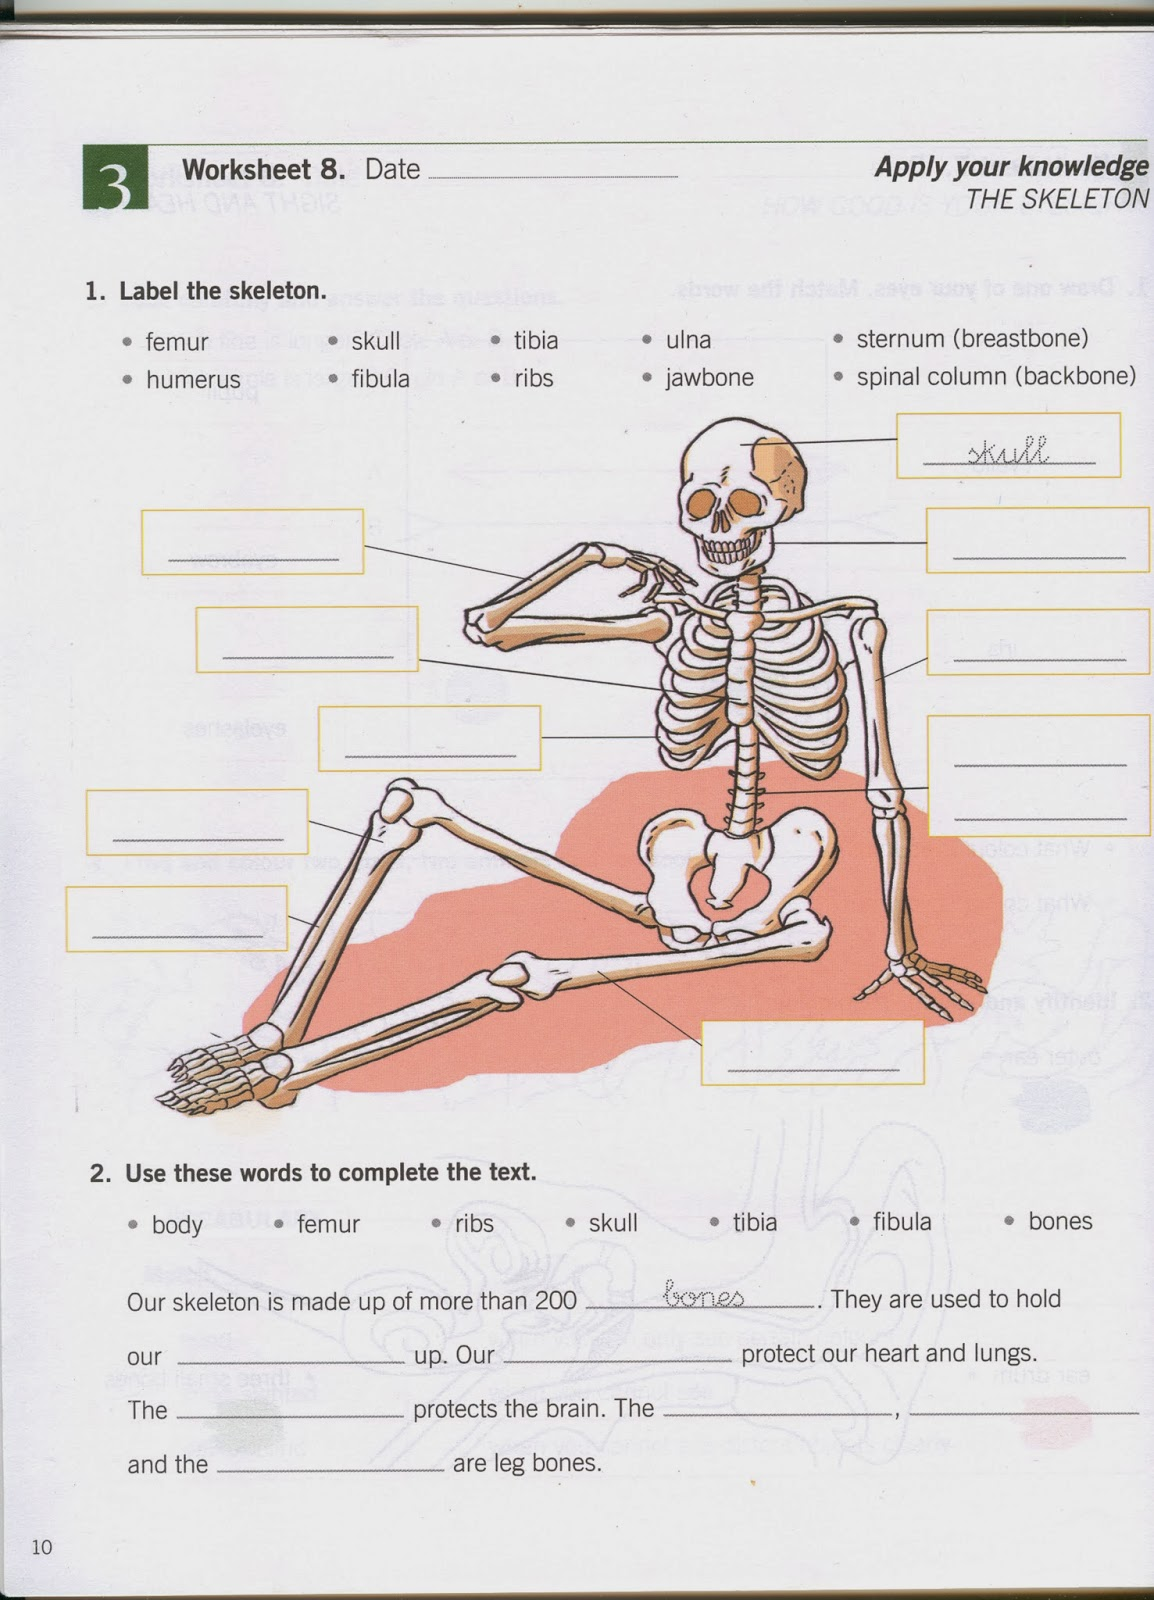 physioex 9 0 exercise 10 activity Posts: 1 rep: 0 0 4 years ago  exercise 10: acid-base balance: activity 1:  hyperventilation lab report pre-lab quiz  20 9 751 31 32 3007/11/13 page 3.